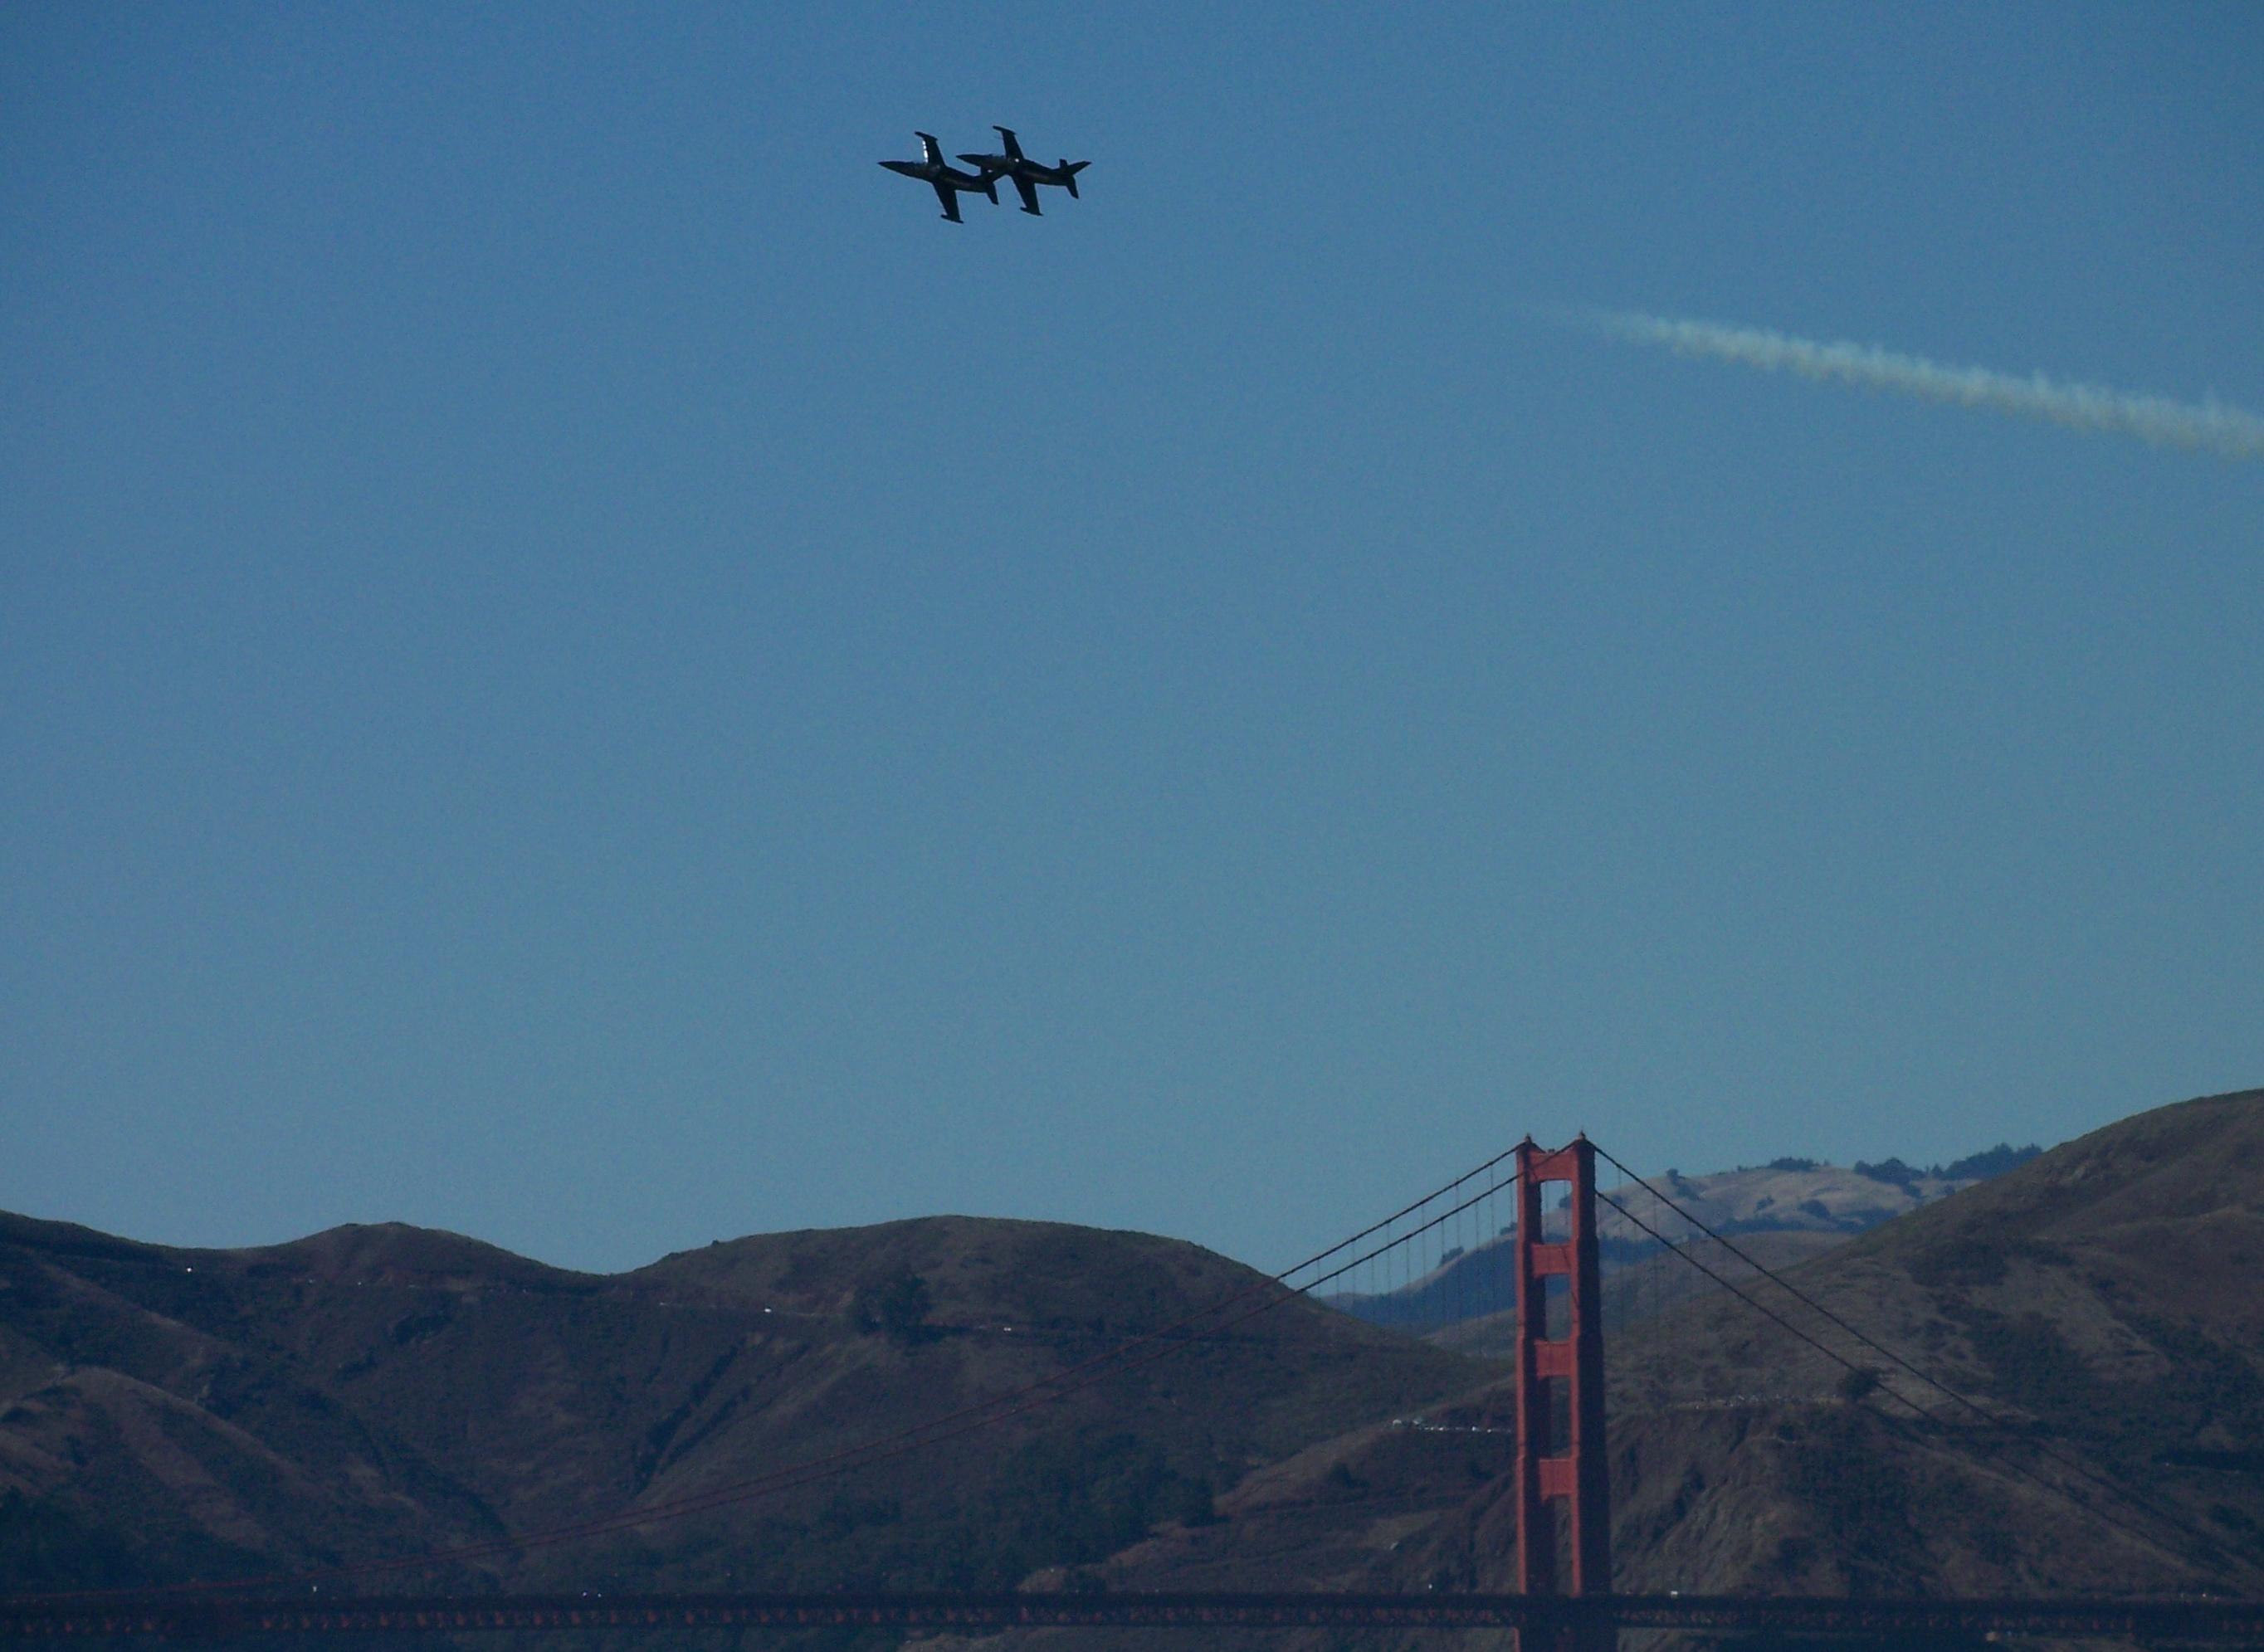 Jets Over The Bridge